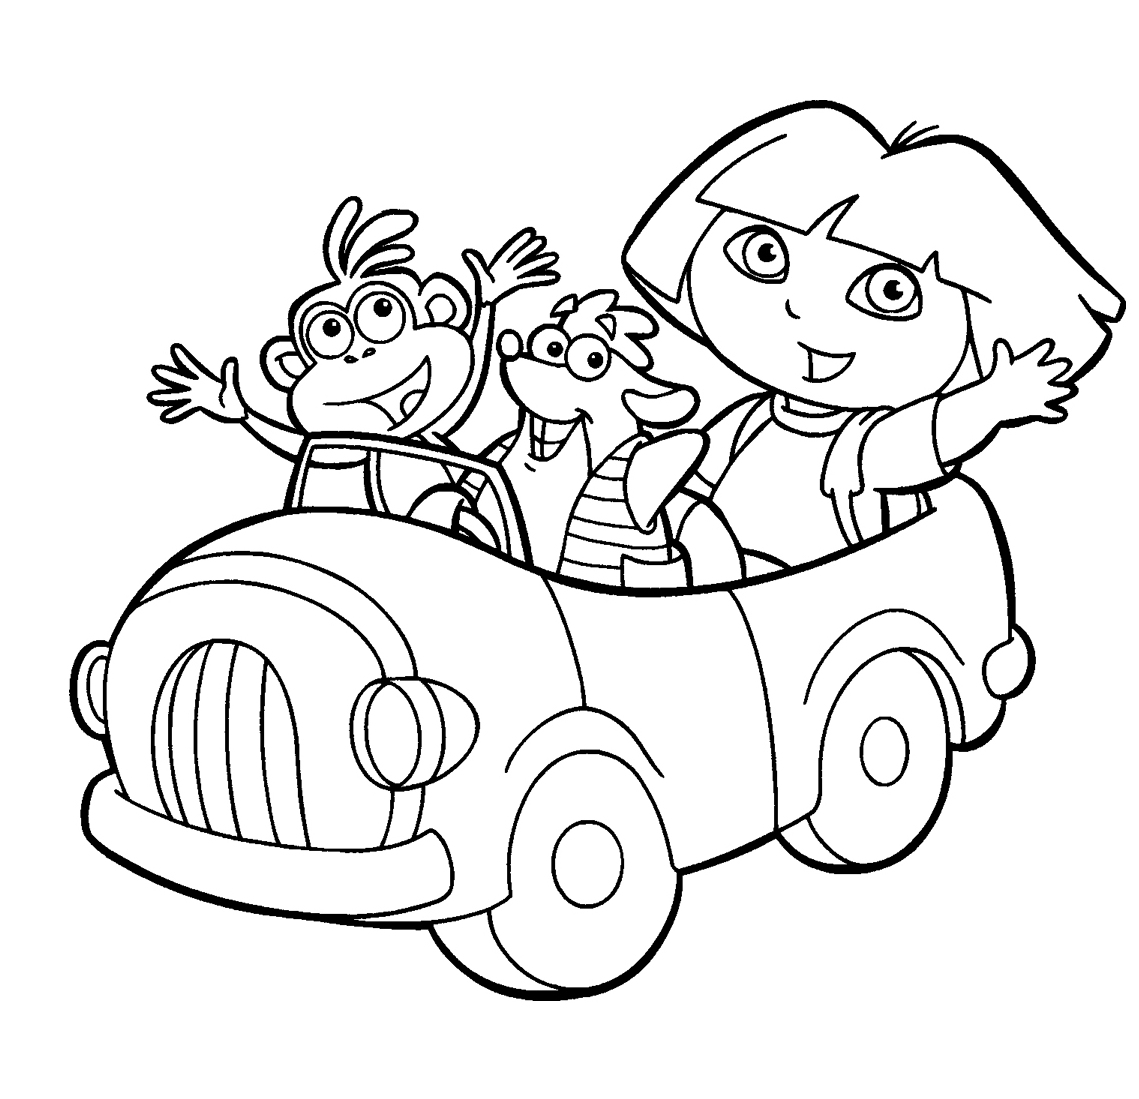 LAMINAS PARA COLOREAR - COLORING PAGES